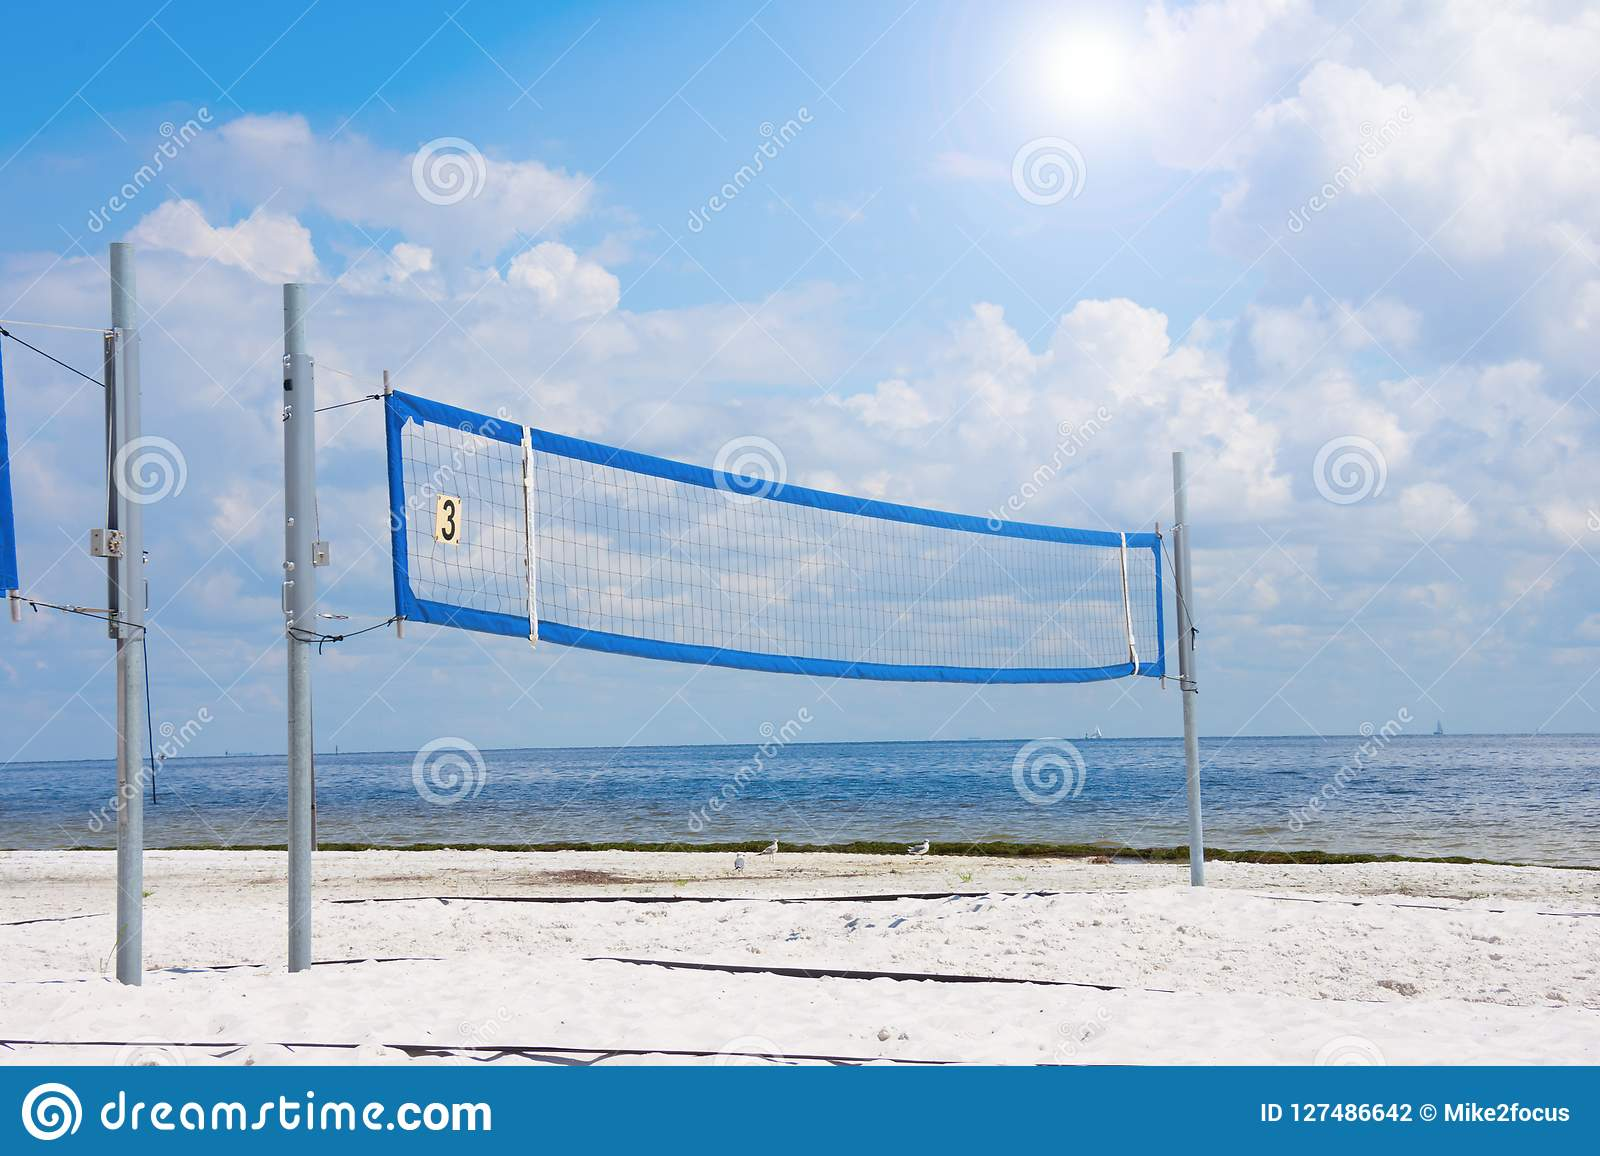 Empty Volleyball Court On The Beach On A Sunny Day Stock Photo Image Of White Sports 127486642